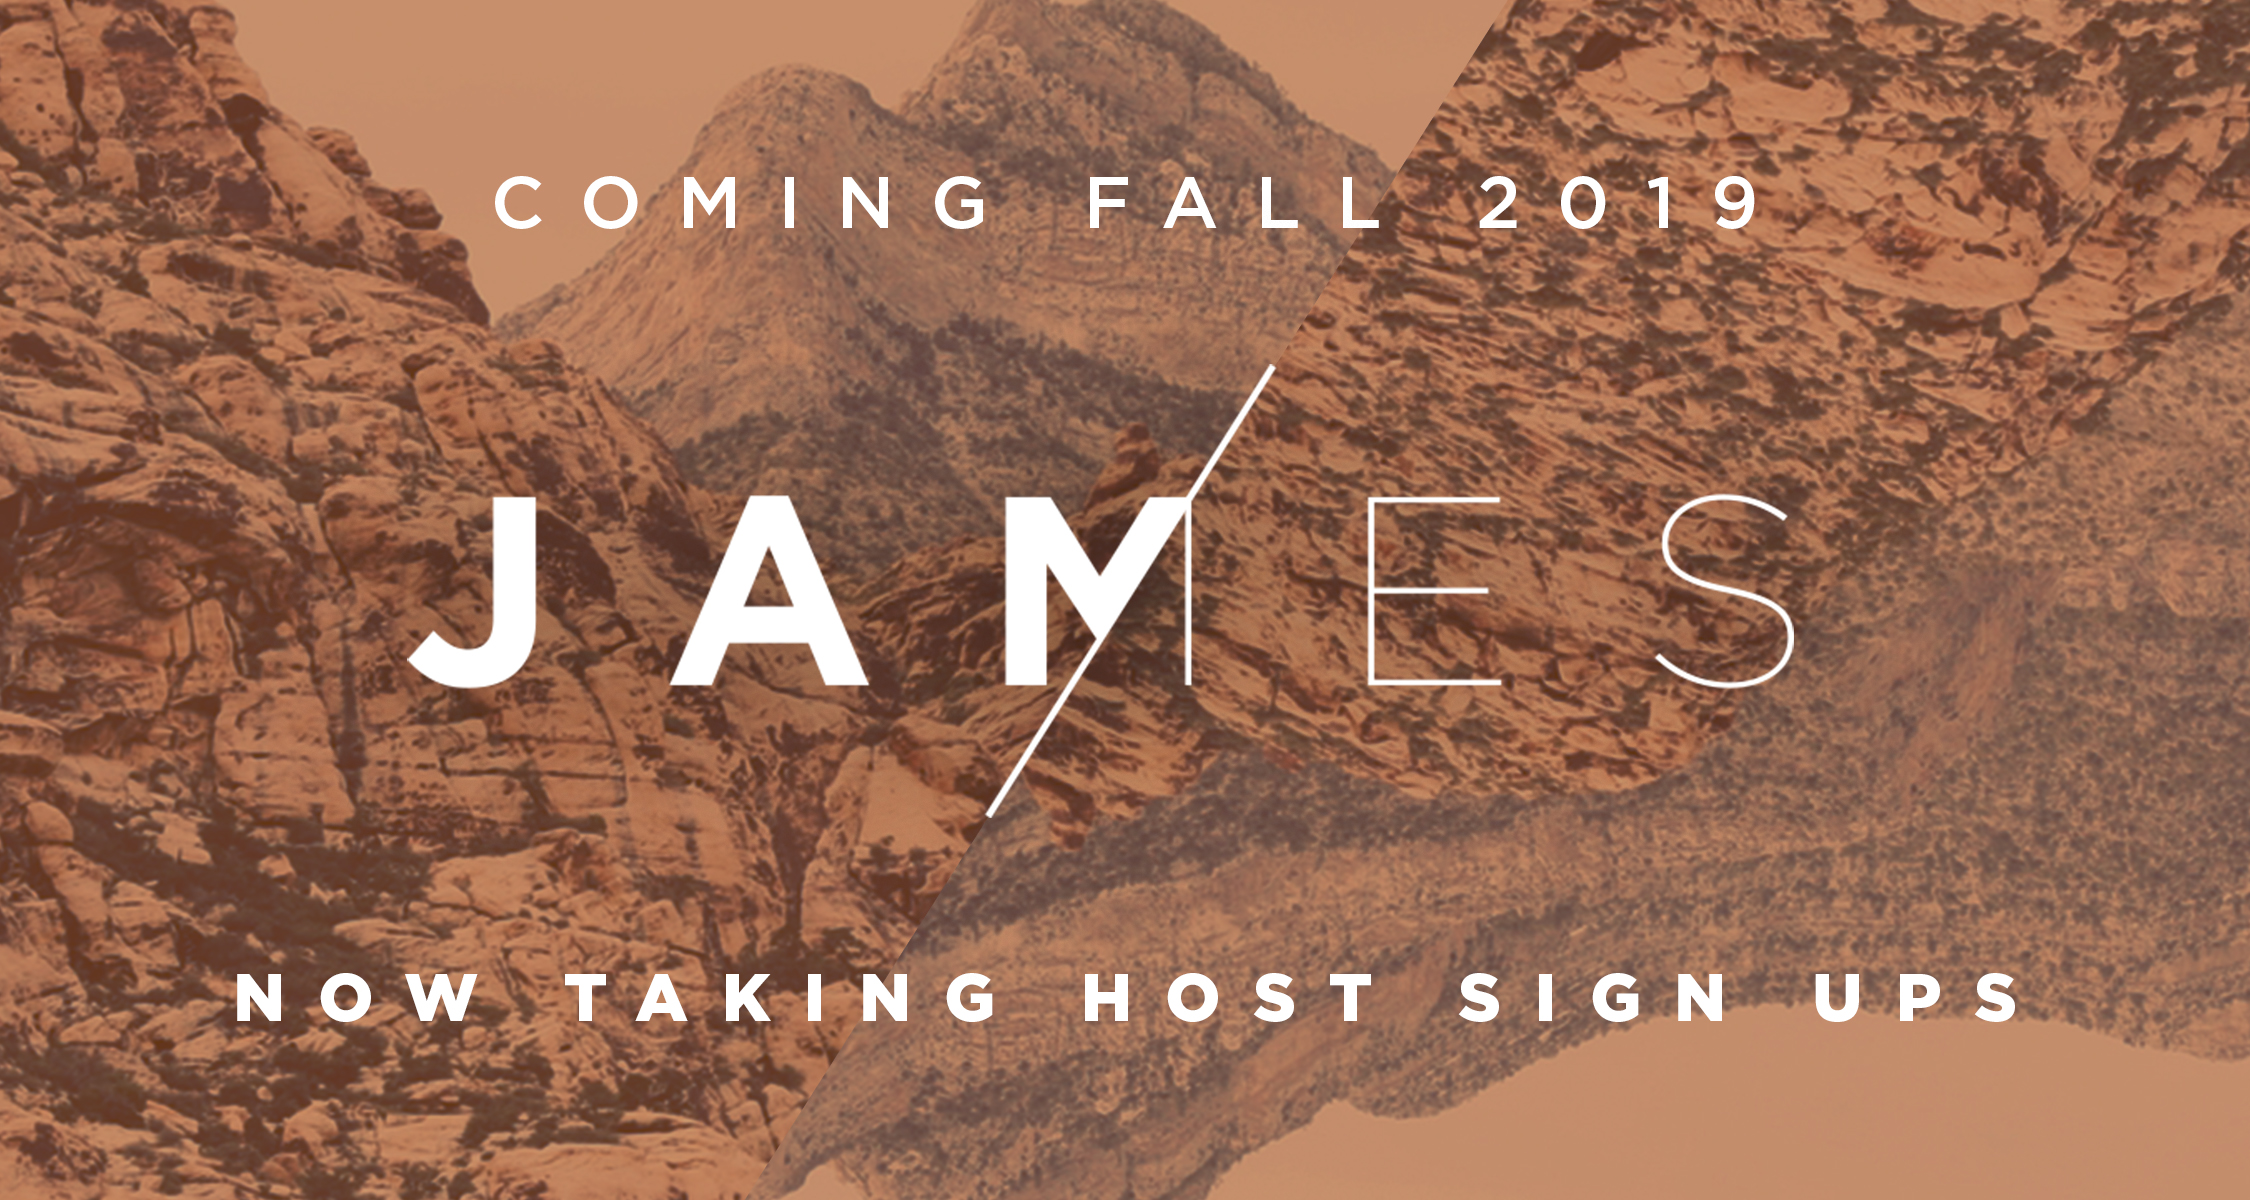 James Campaign Coming Soon.jpg